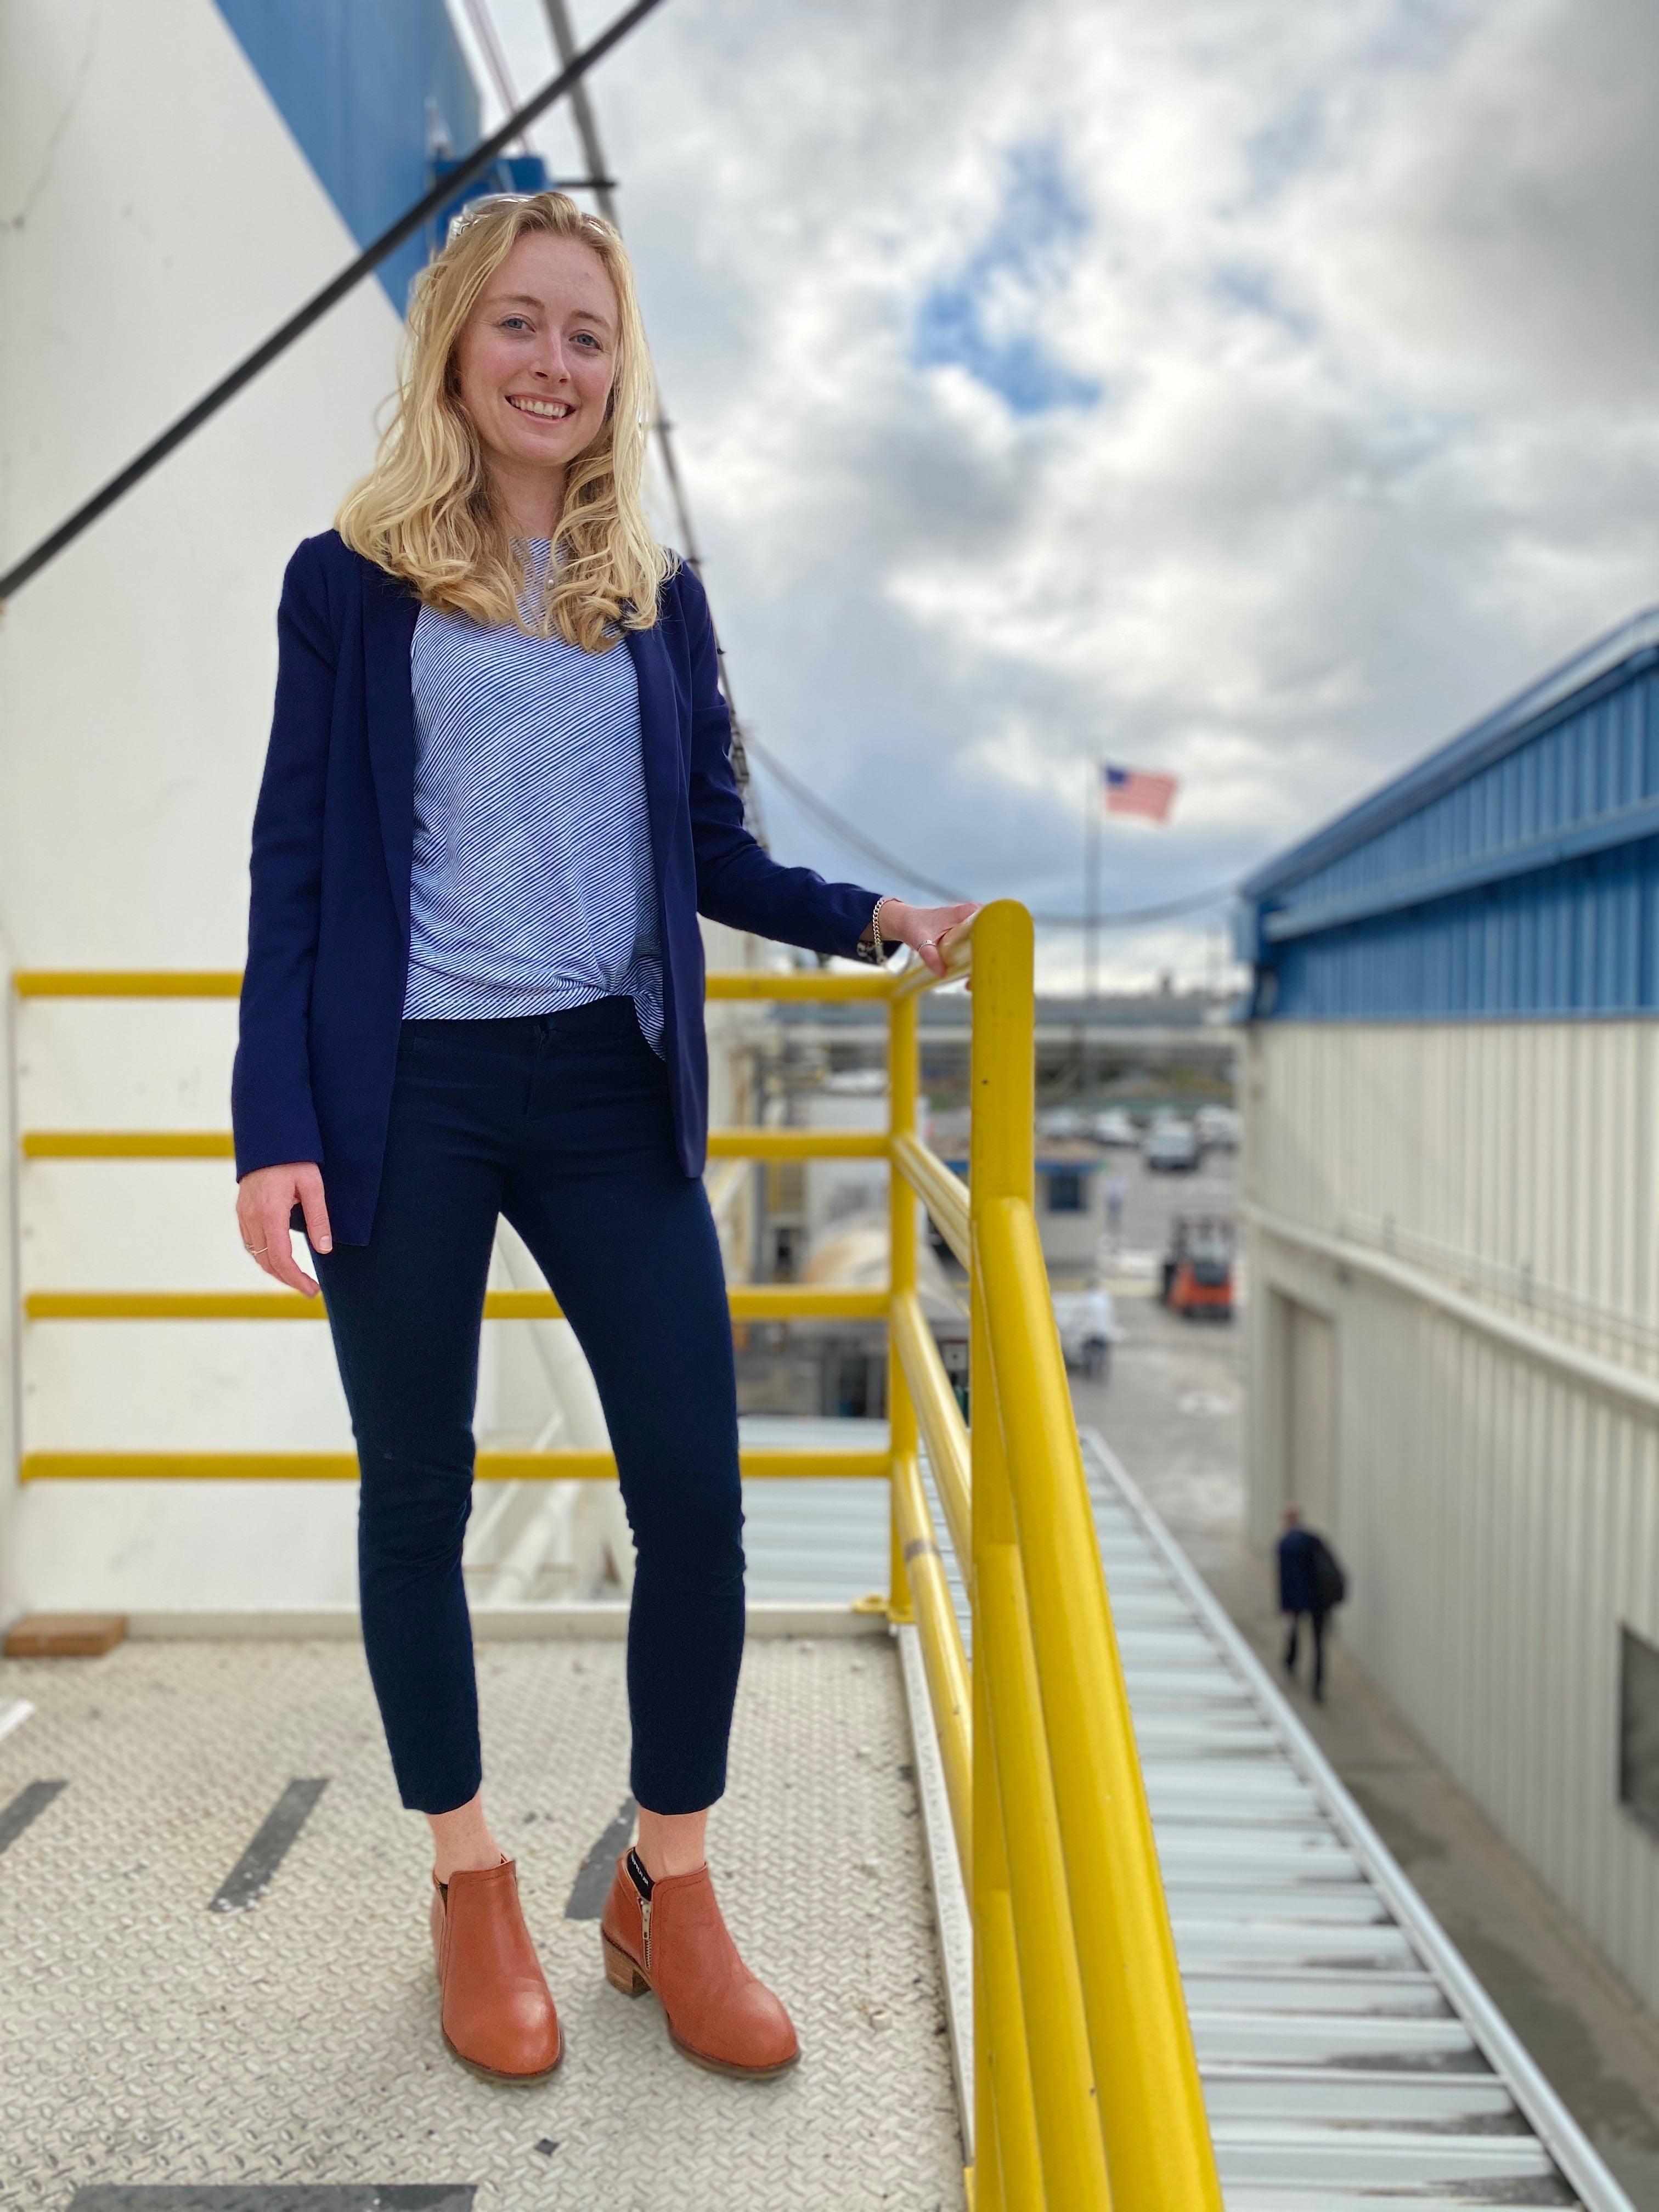 Katie Ziegler an Aerospace Manufacturing Engineer